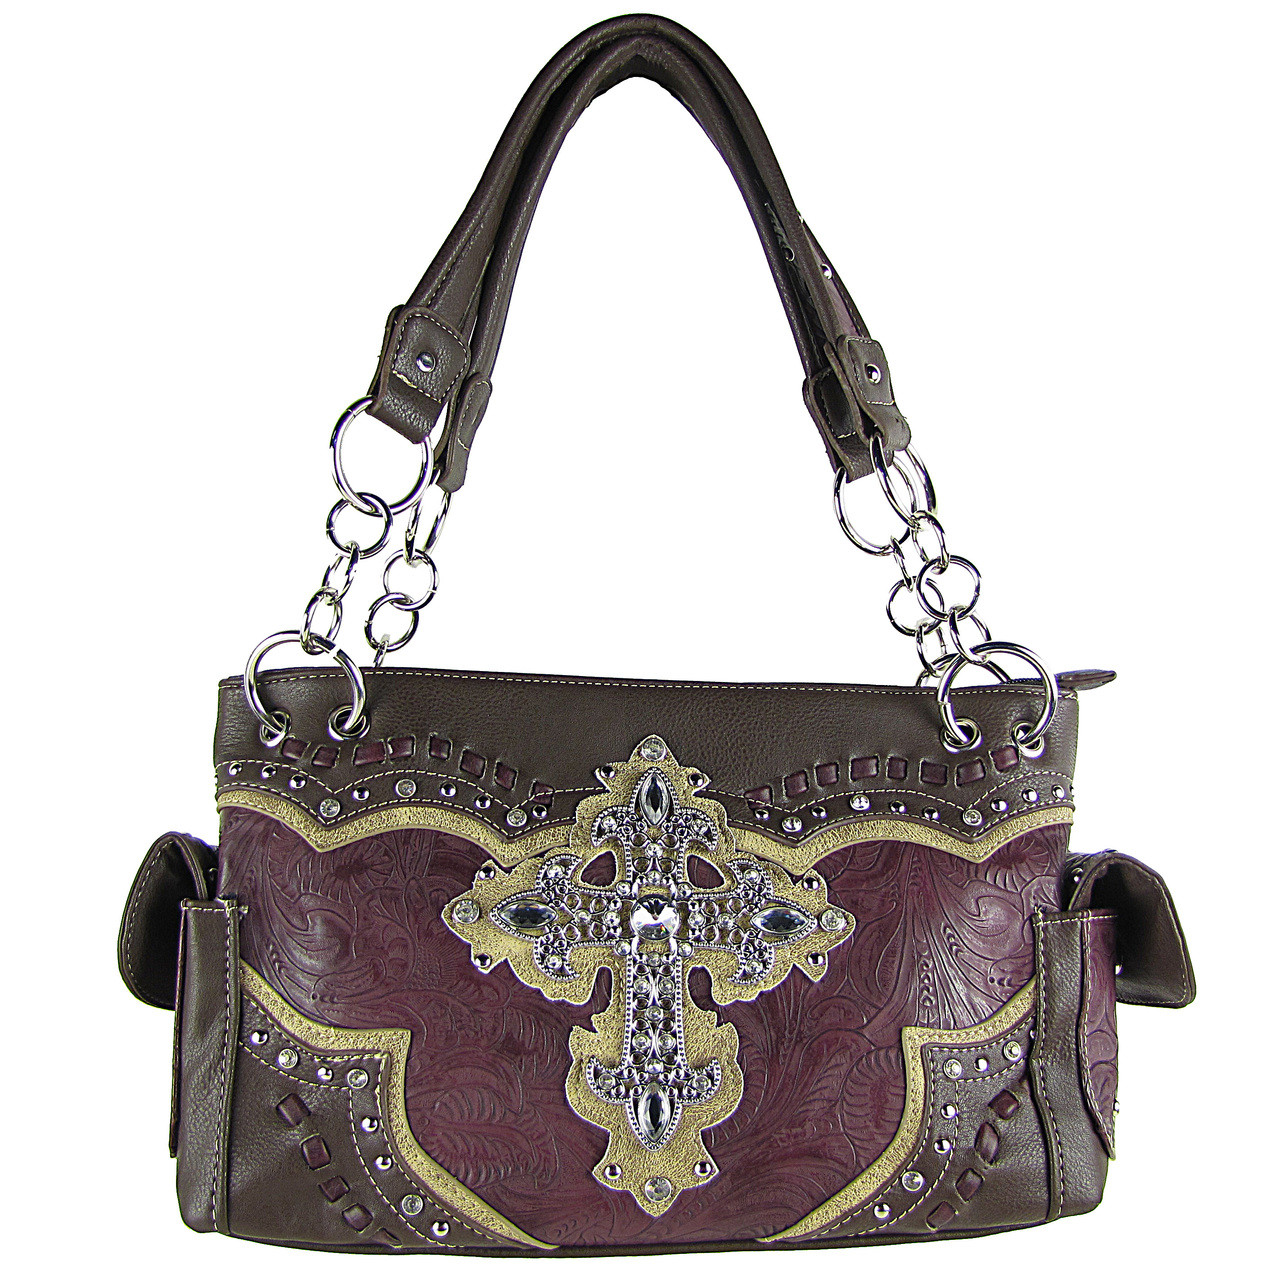 PURPLE WESTERN RHINESTONE CROSS LOOK SHOULDER HANDBAG HB1-34LCRPPL